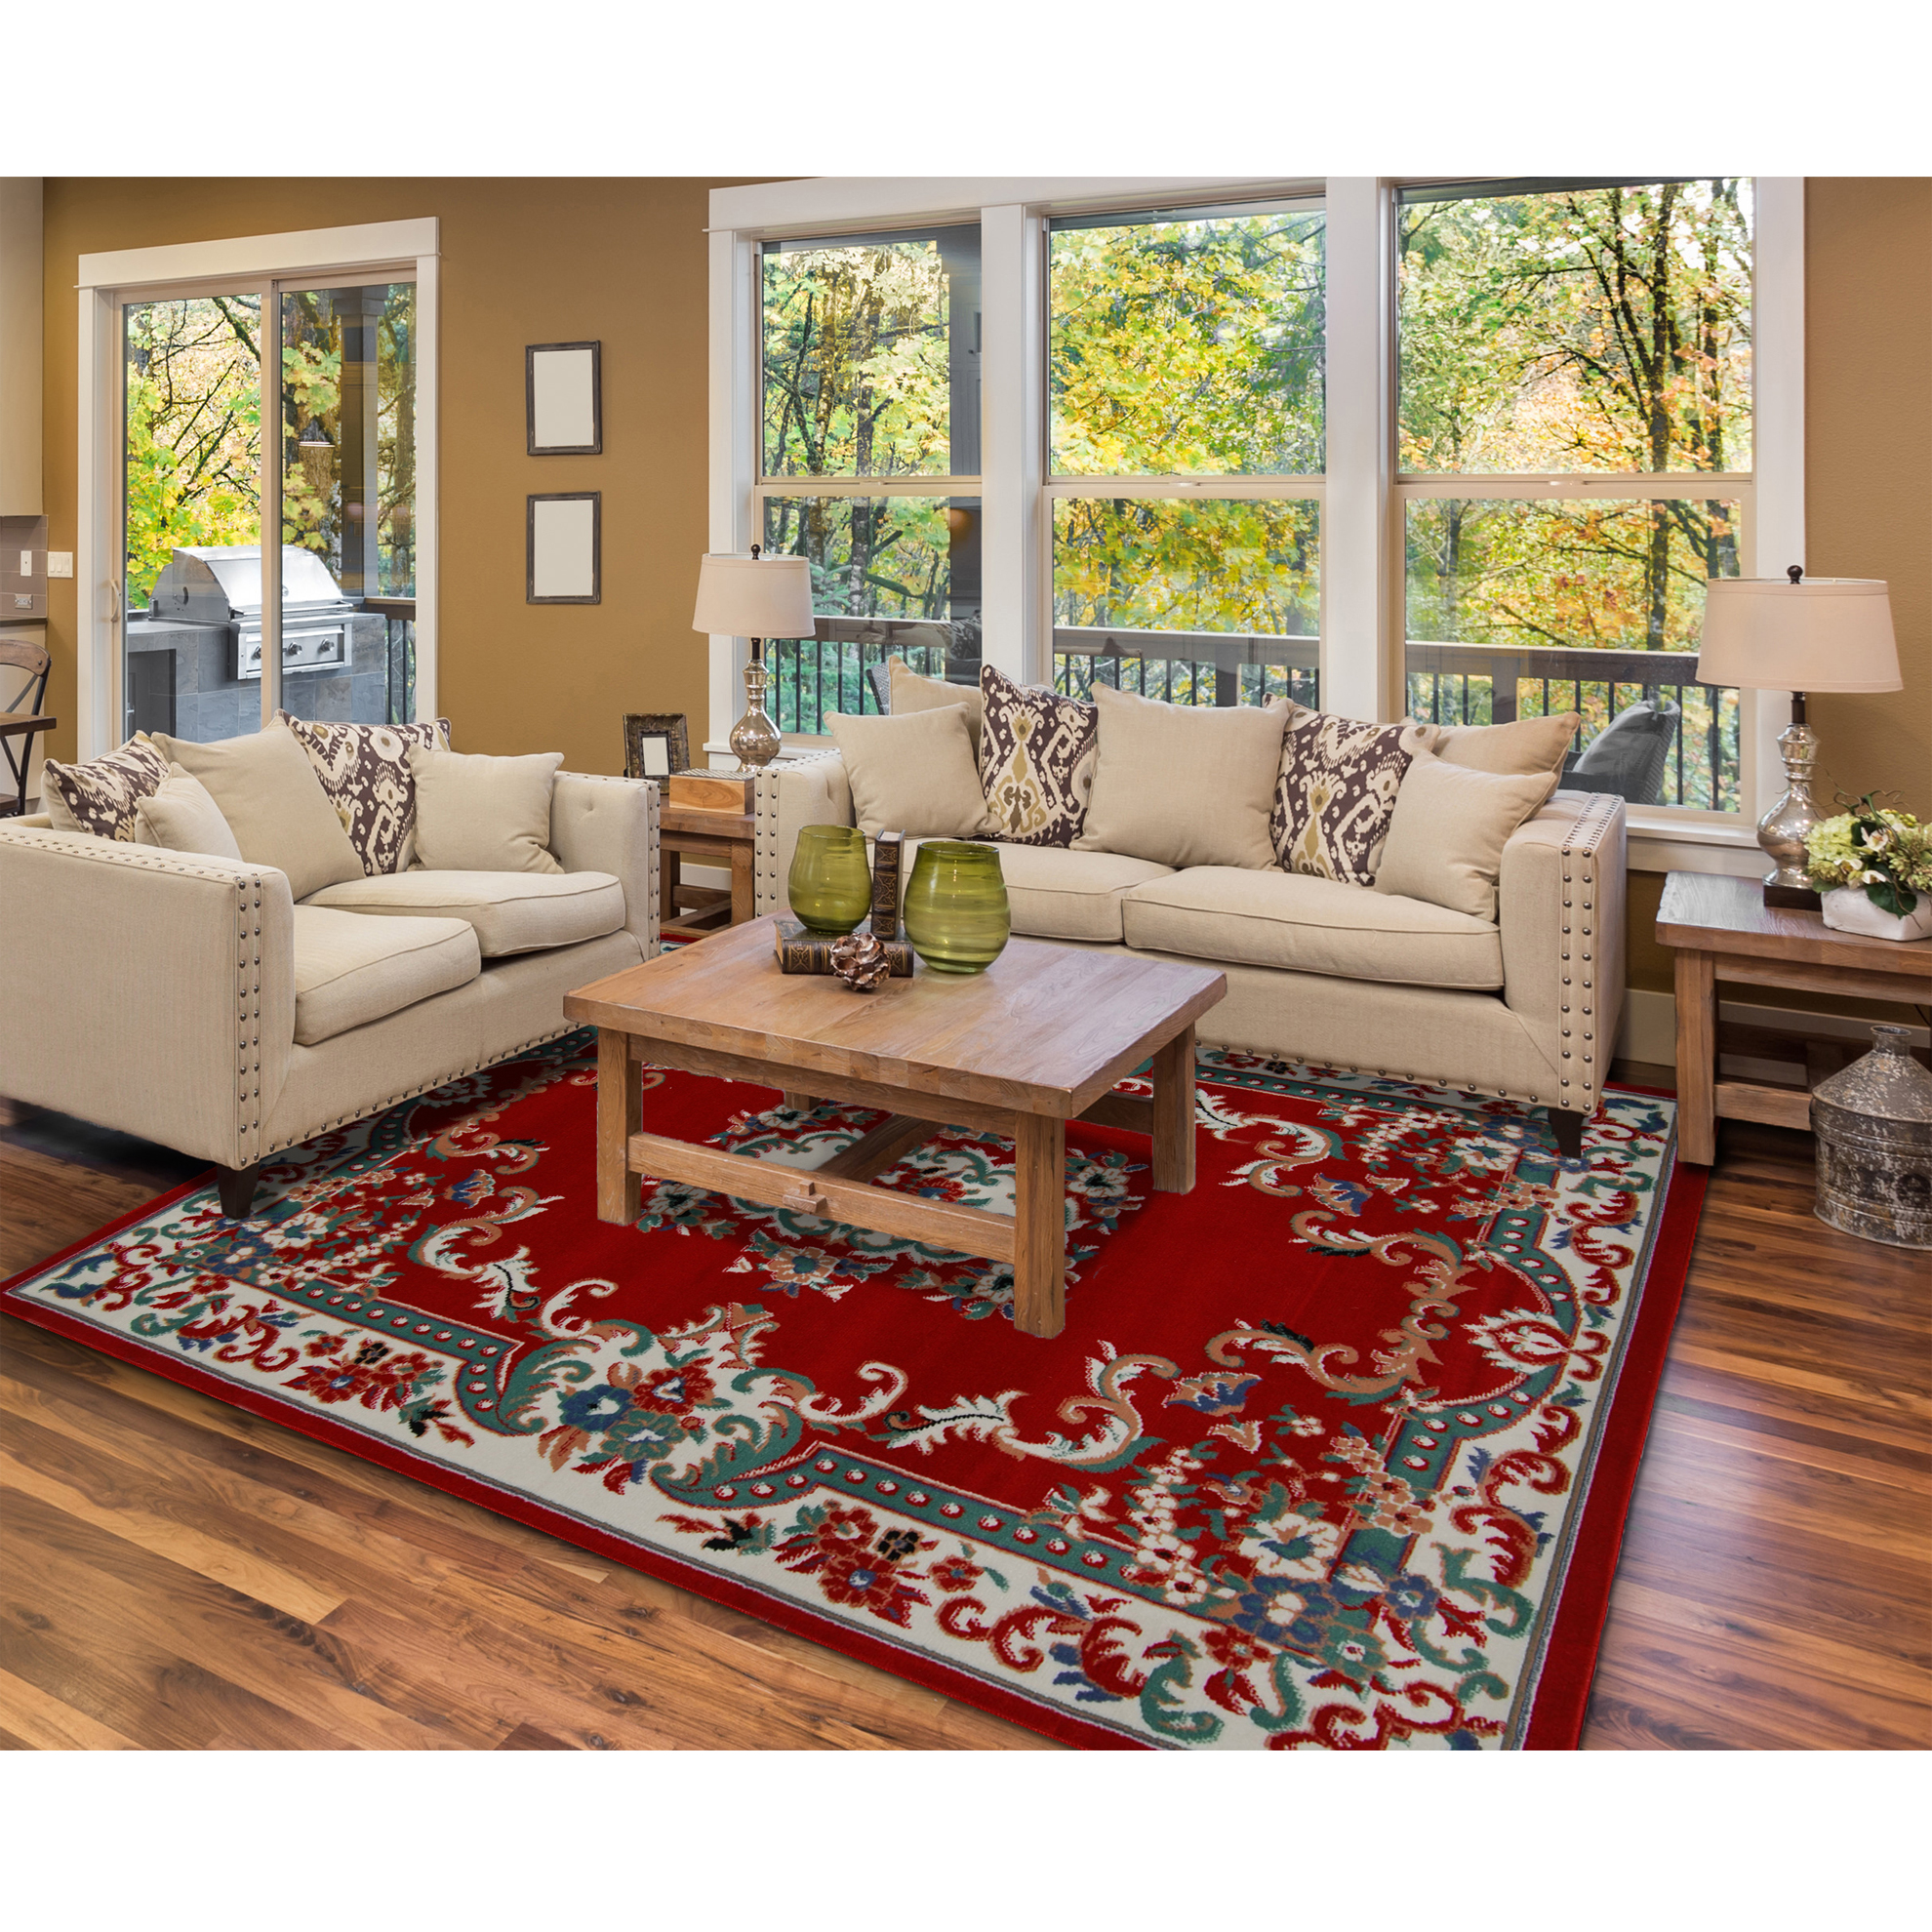 Rugs area rugs carpet flooring persian area rug oriental - Decorating with area rugs ...